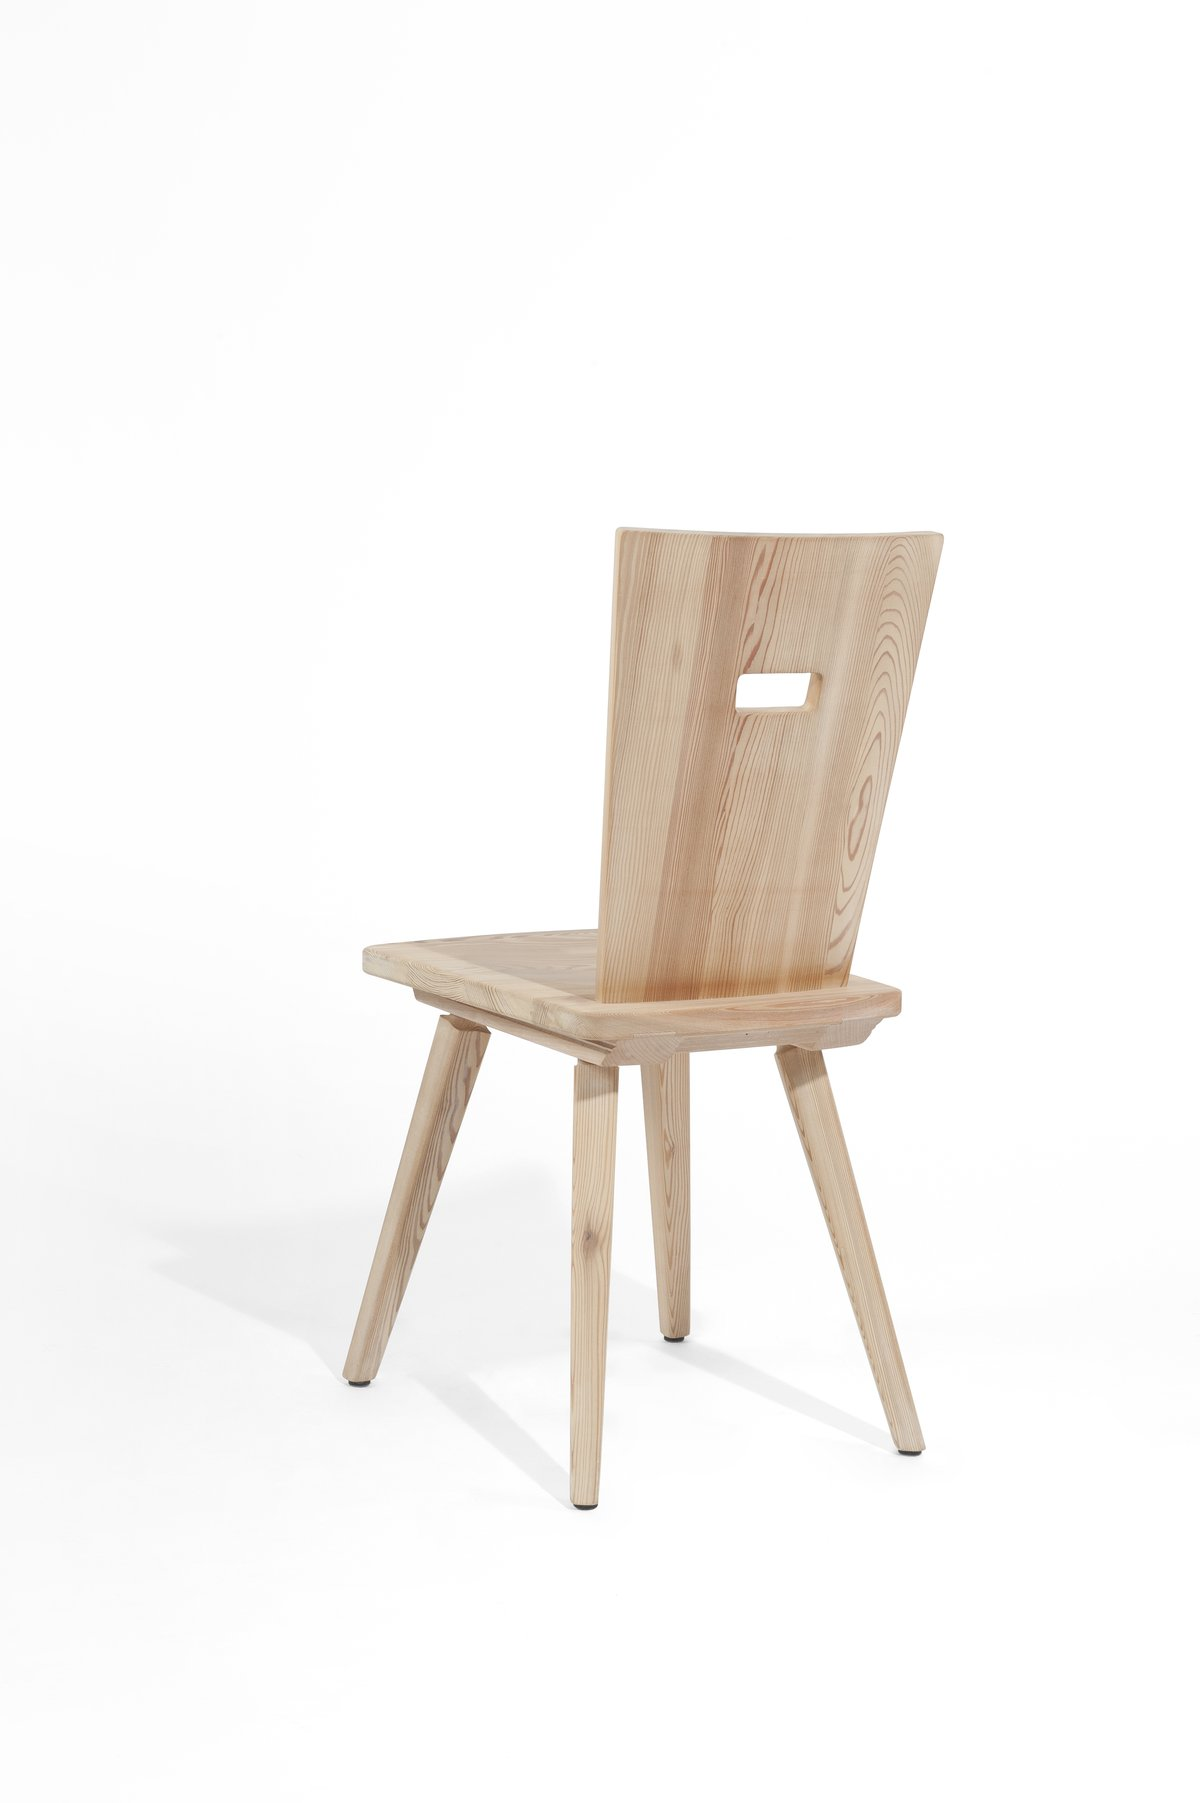 Chair model 4181 th ni st hle barhocker tische b nke for Barhocker 3d model